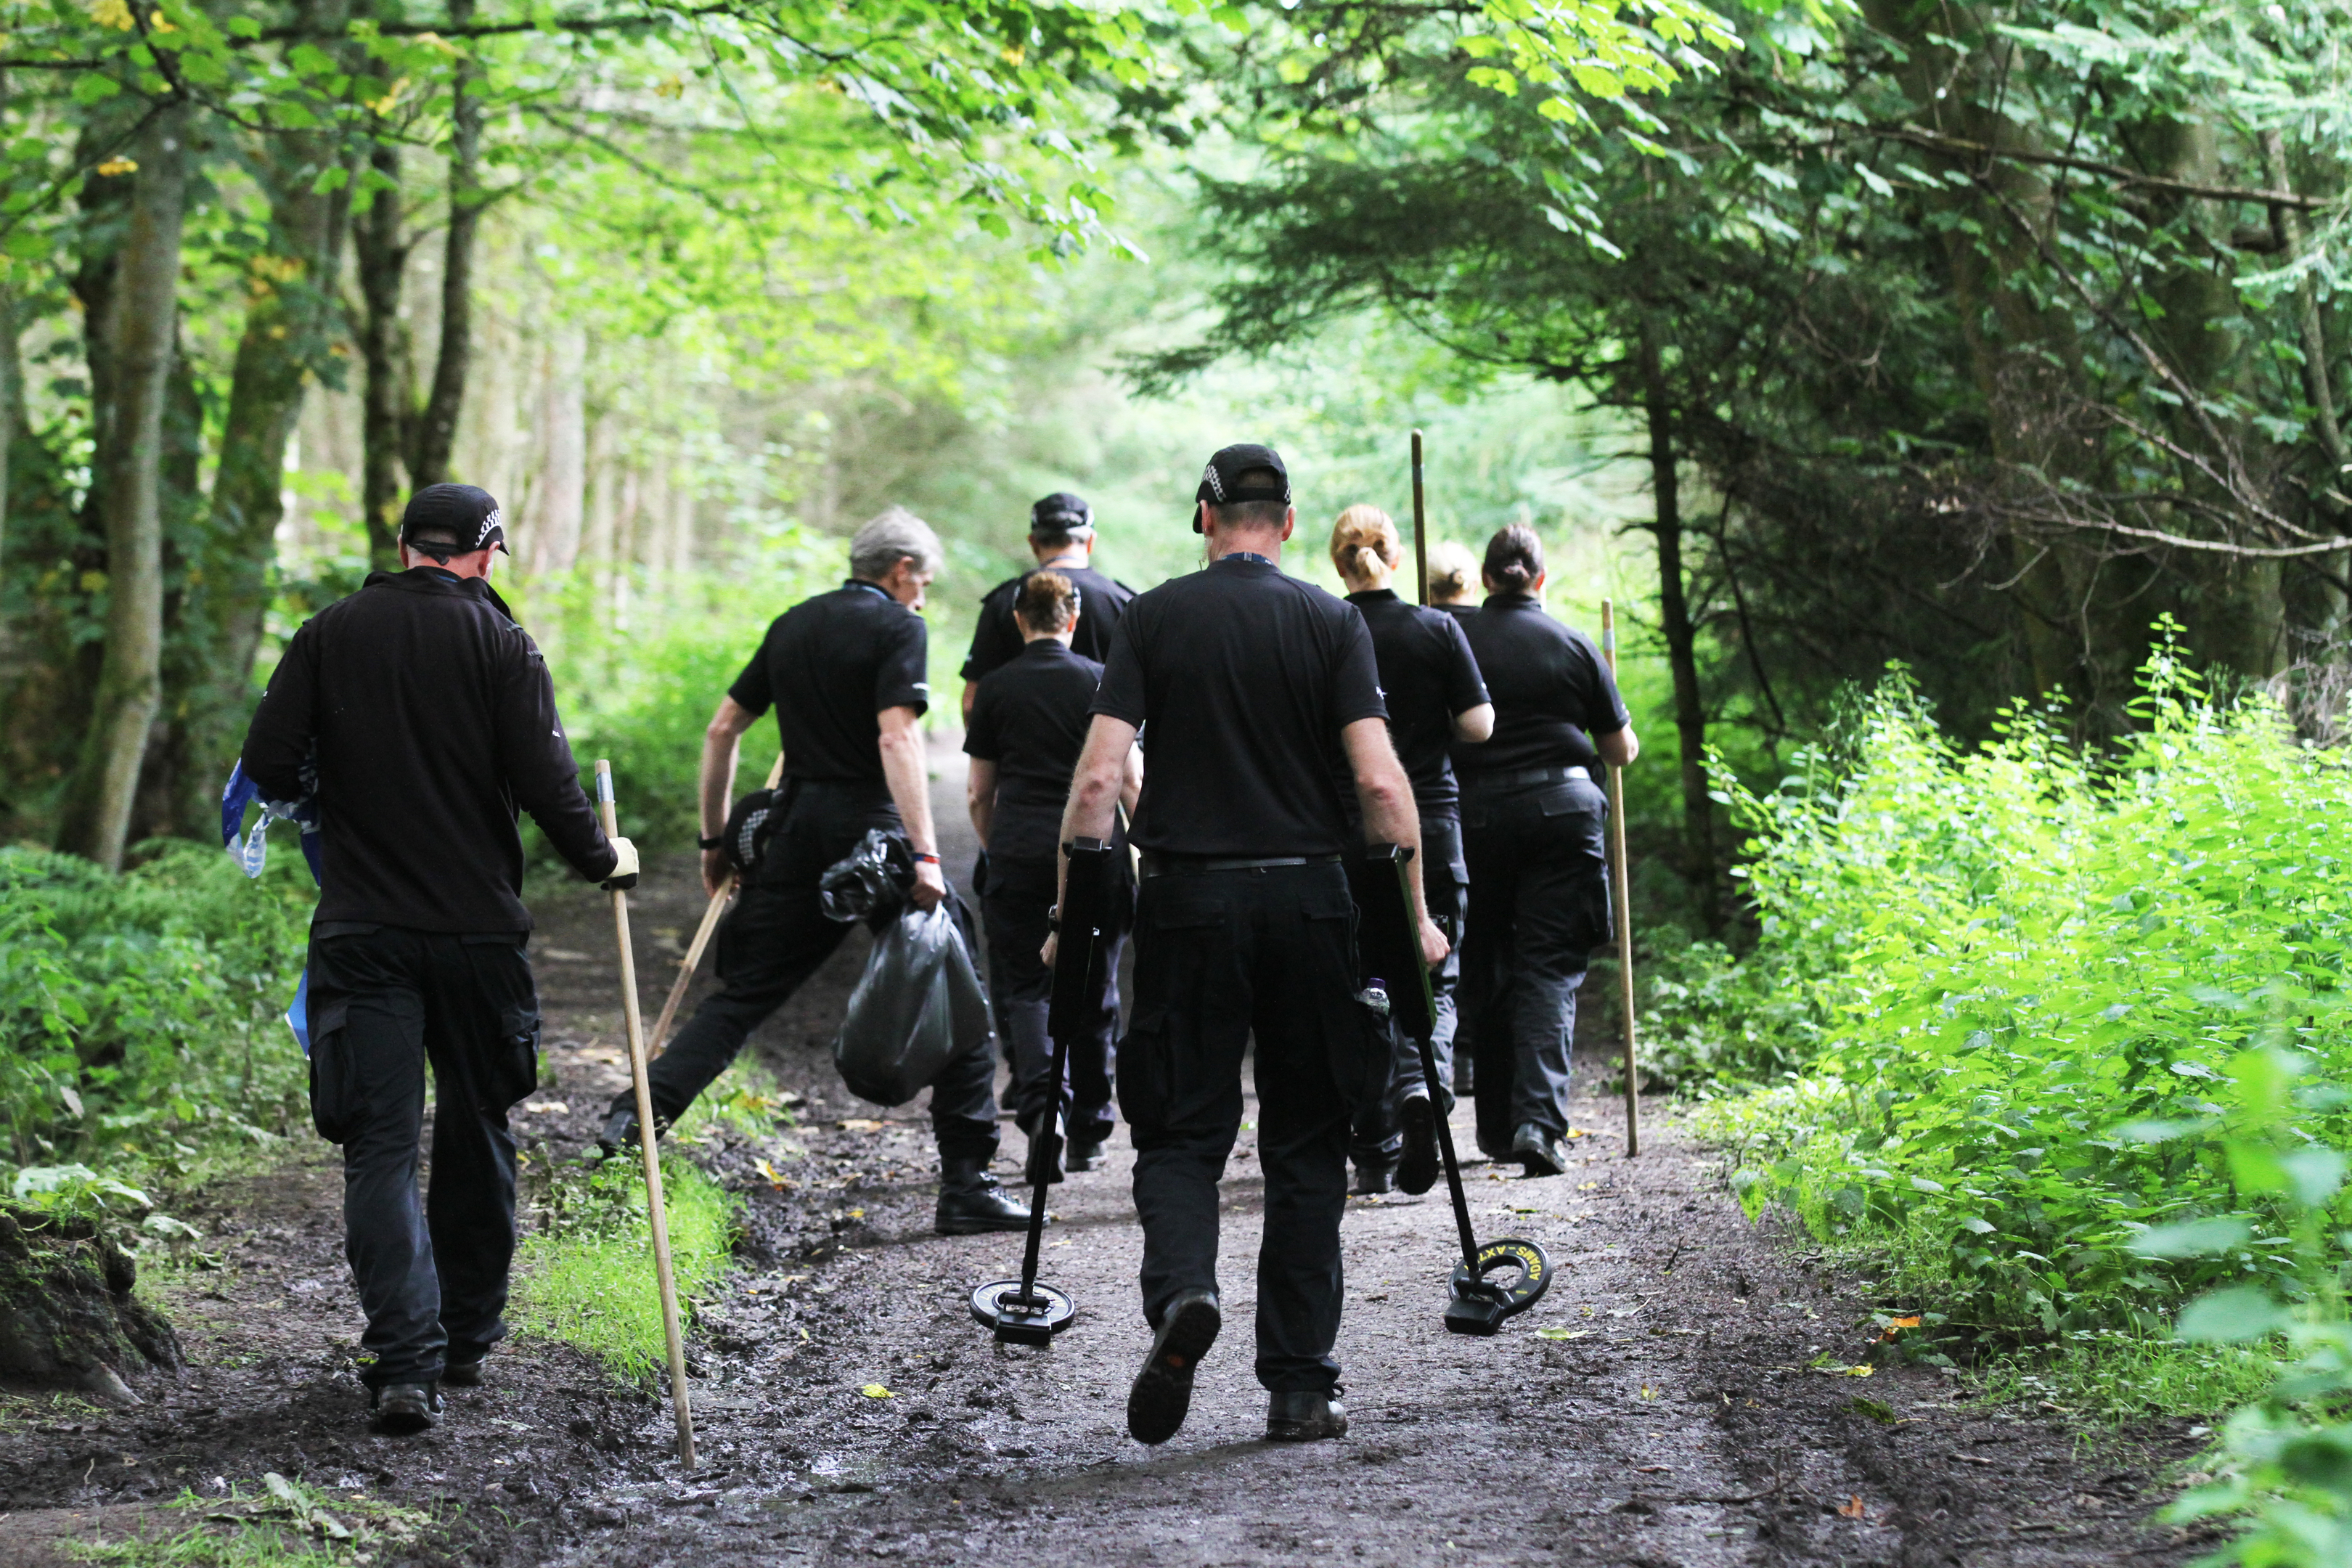 Police teams searching Templeton Woods for evidence.